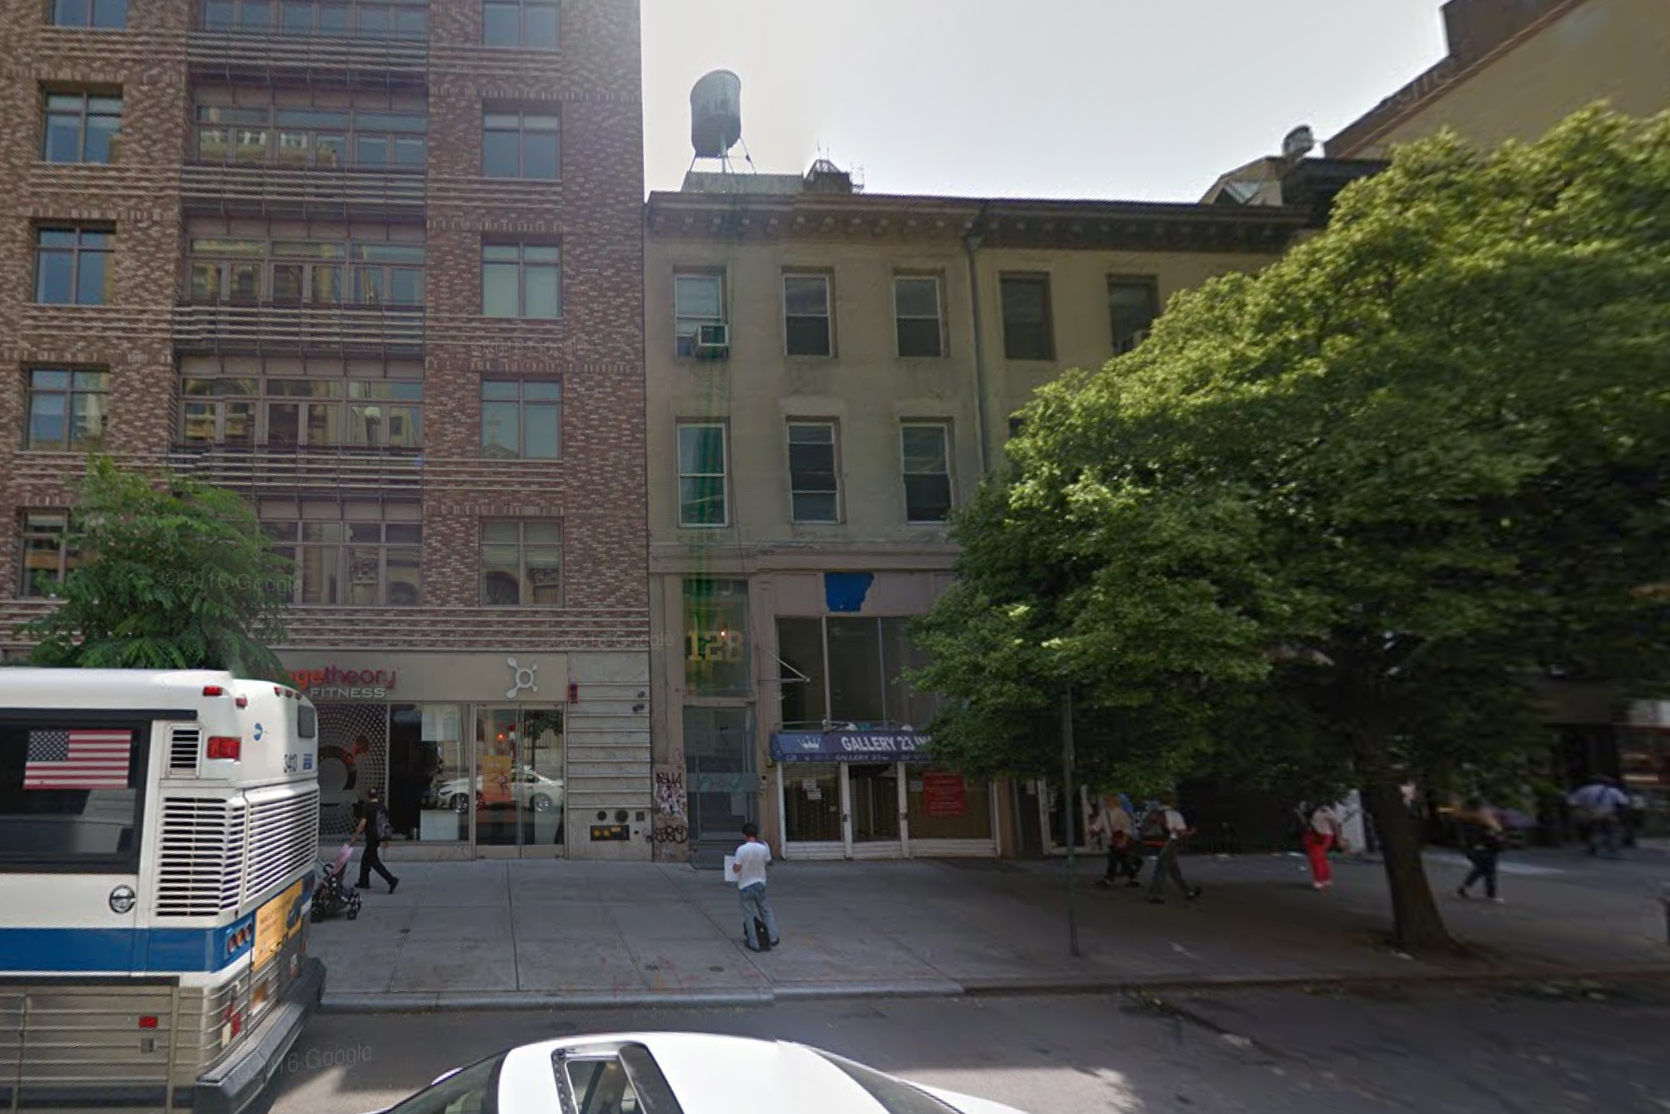 128 West 23rd Street, image via Google Maps